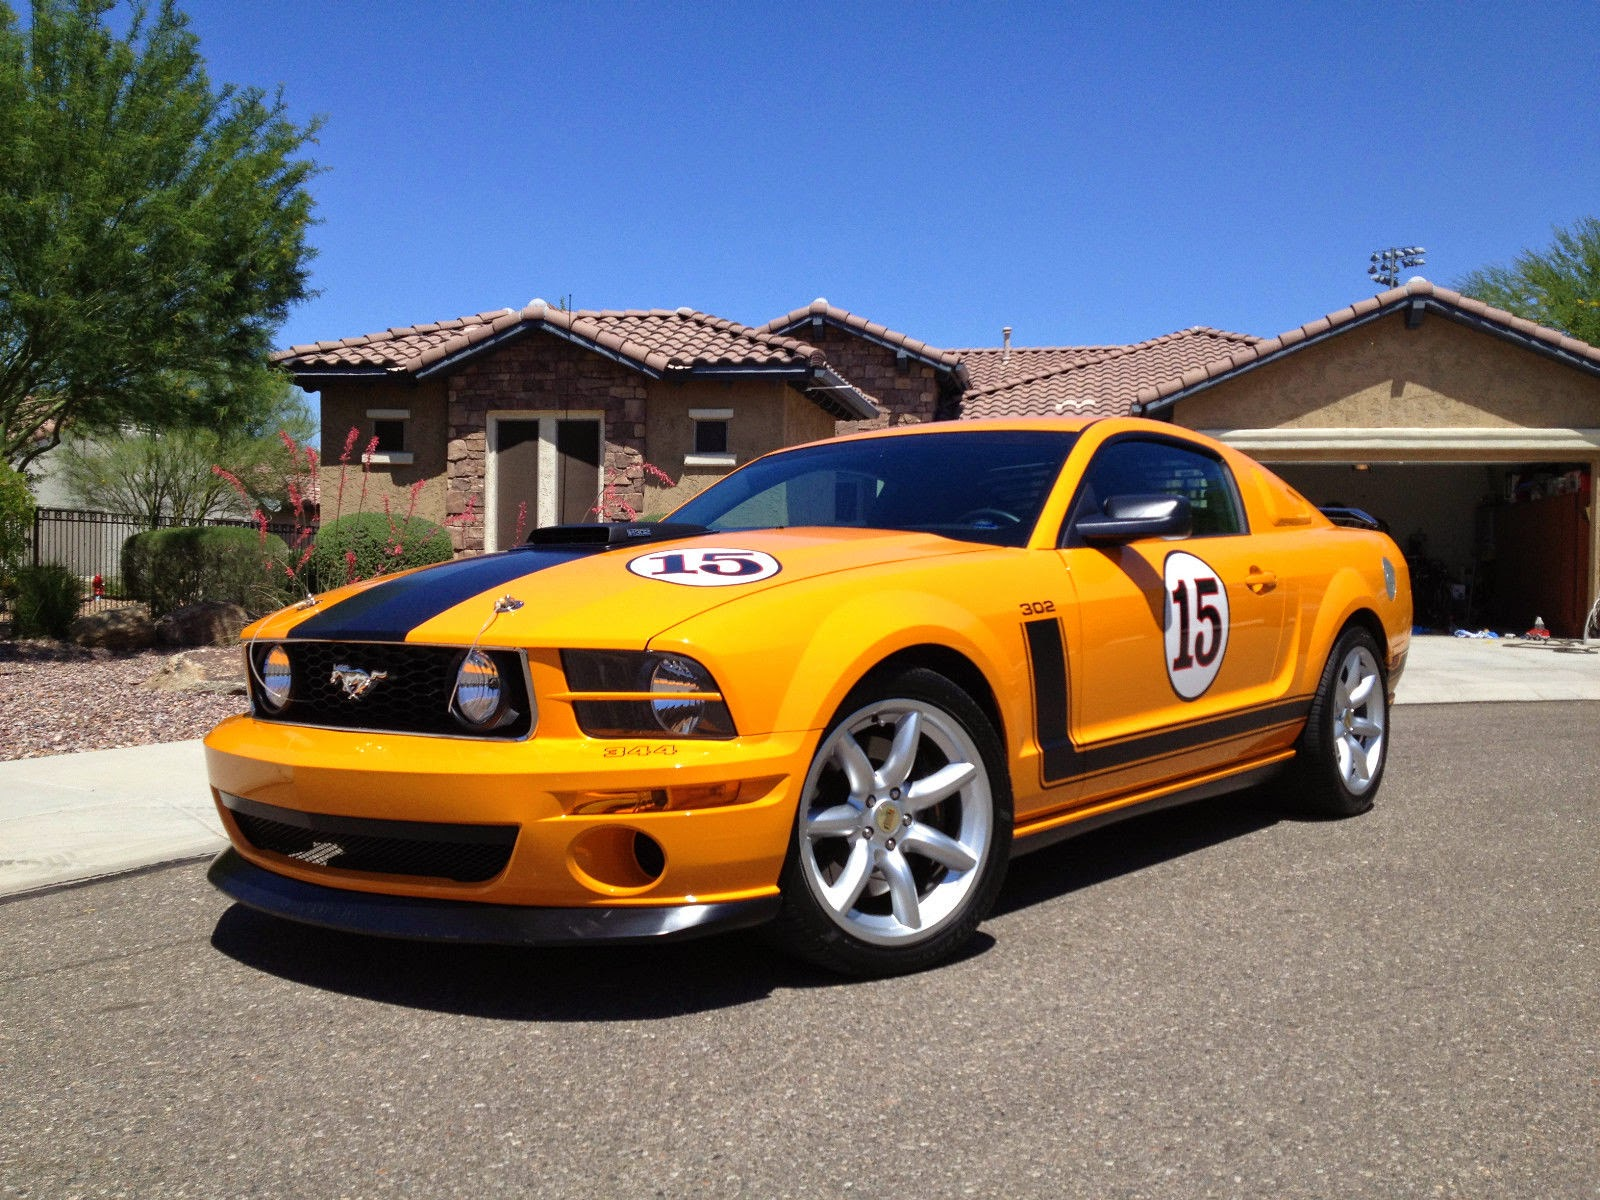 For Sale 2007 500 Limited Edition Parnelli Jones/Steve Saleen Ford Mustang Boss 302